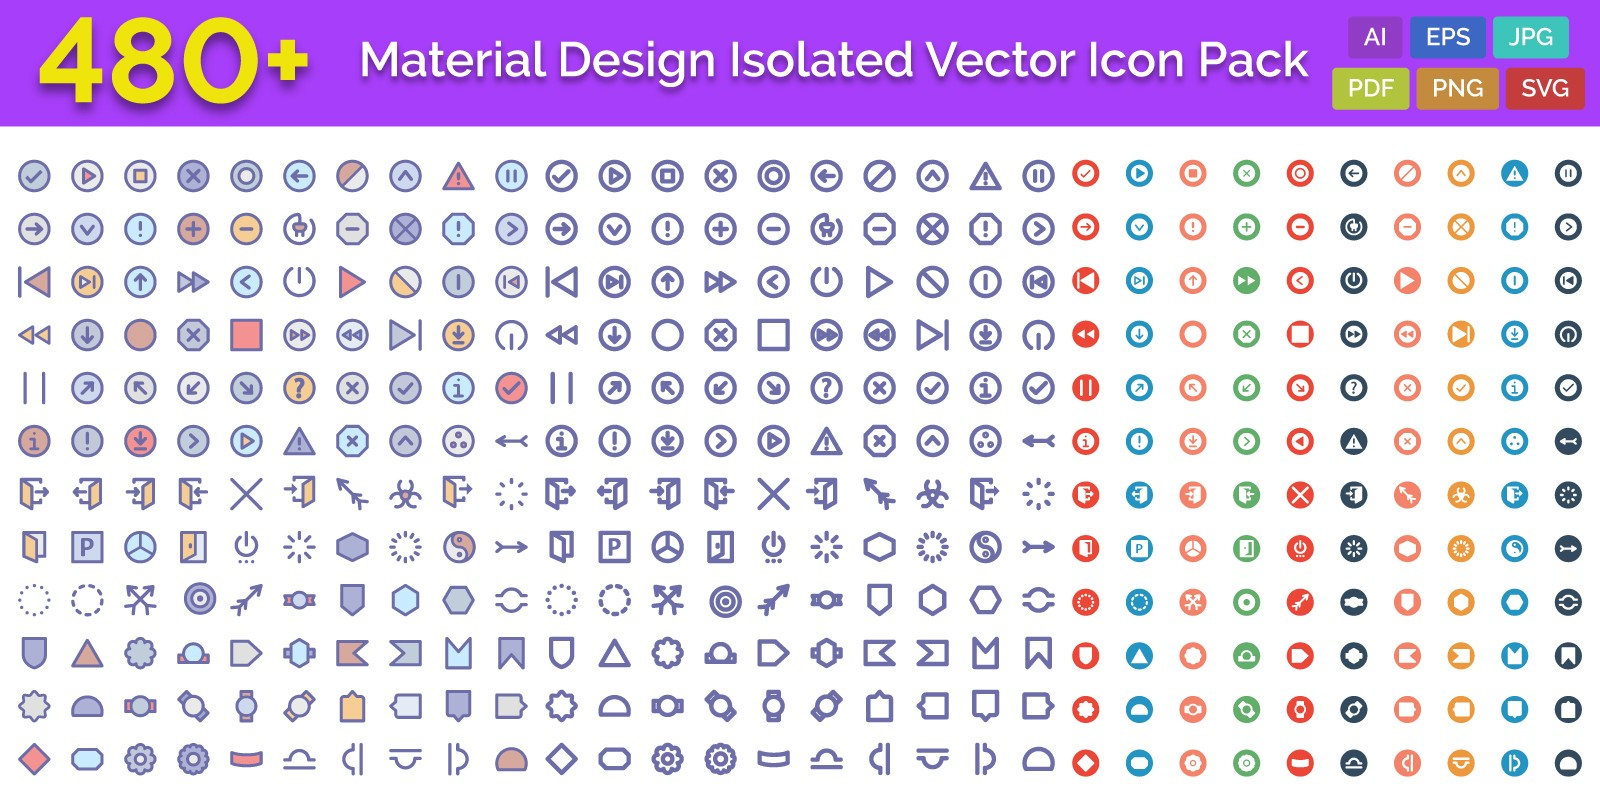 480+ Material Design Isolated Vector Icon Pack